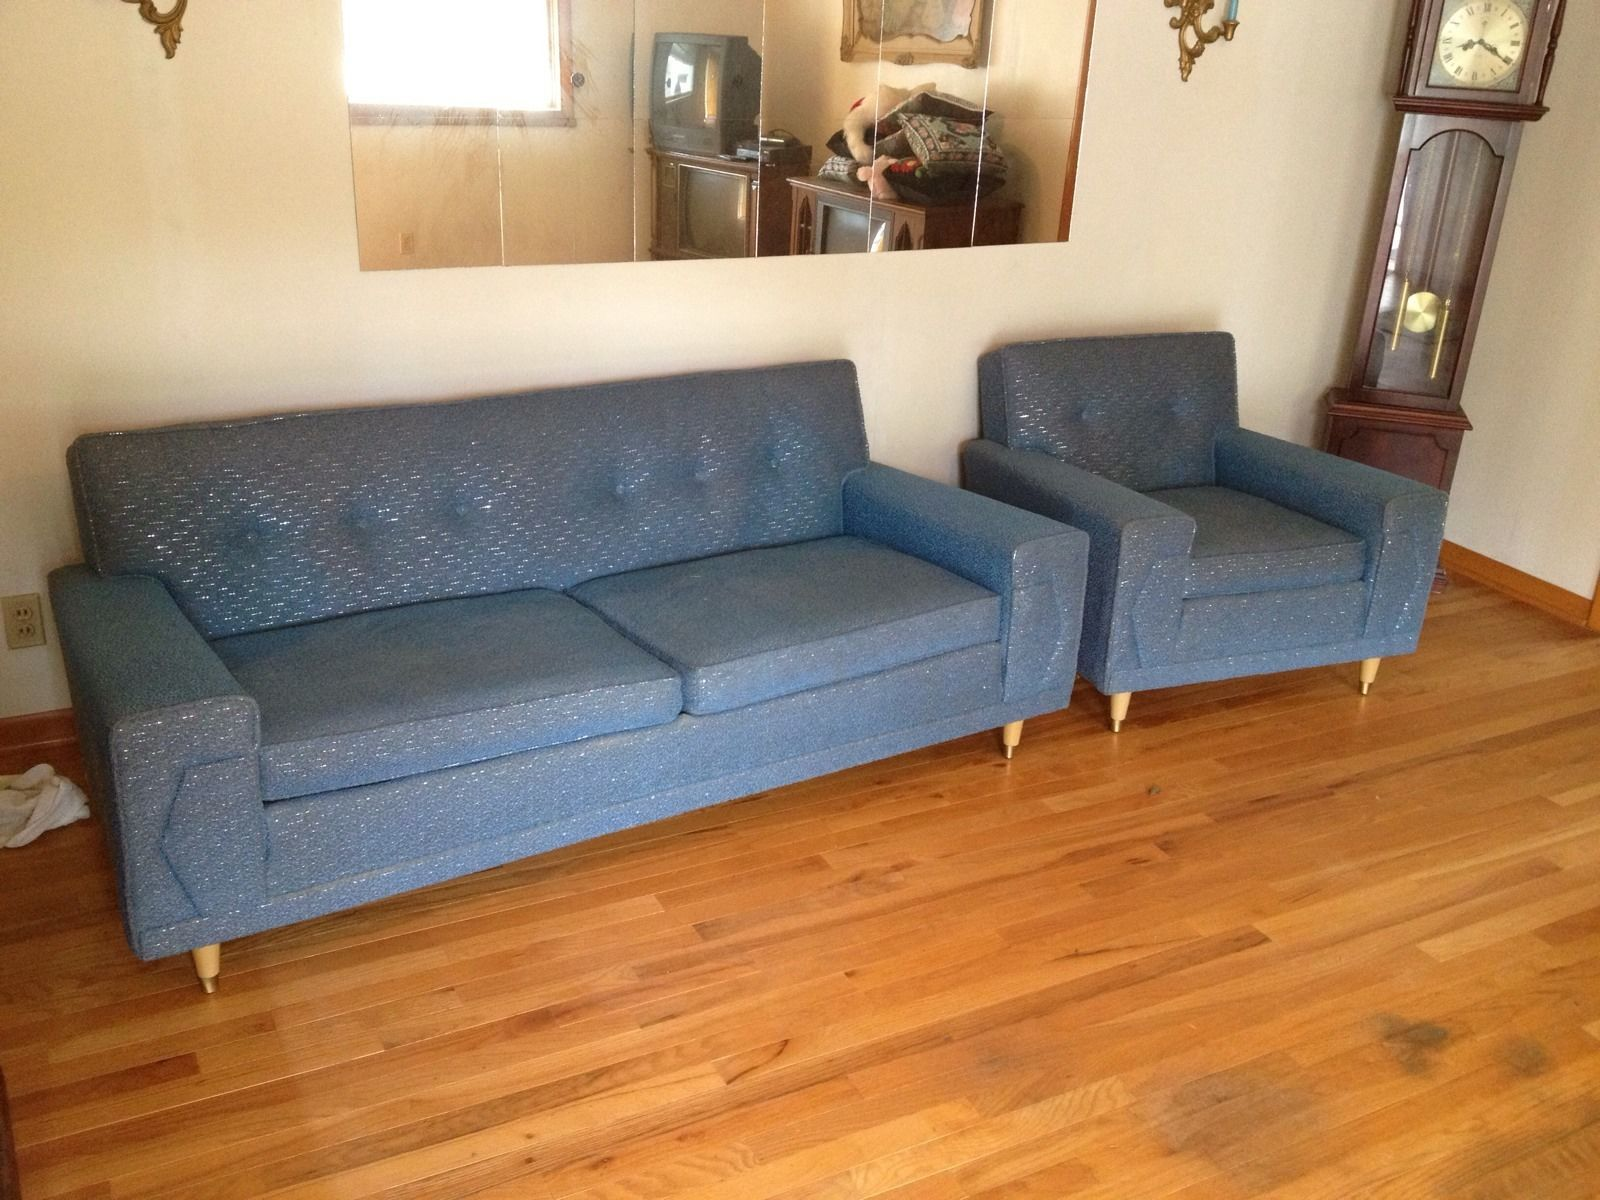 Pin By Cathie Bryant On Fab Vintage Furniture Couch Chair Set Sofa Styling Mid Century Modern Couch